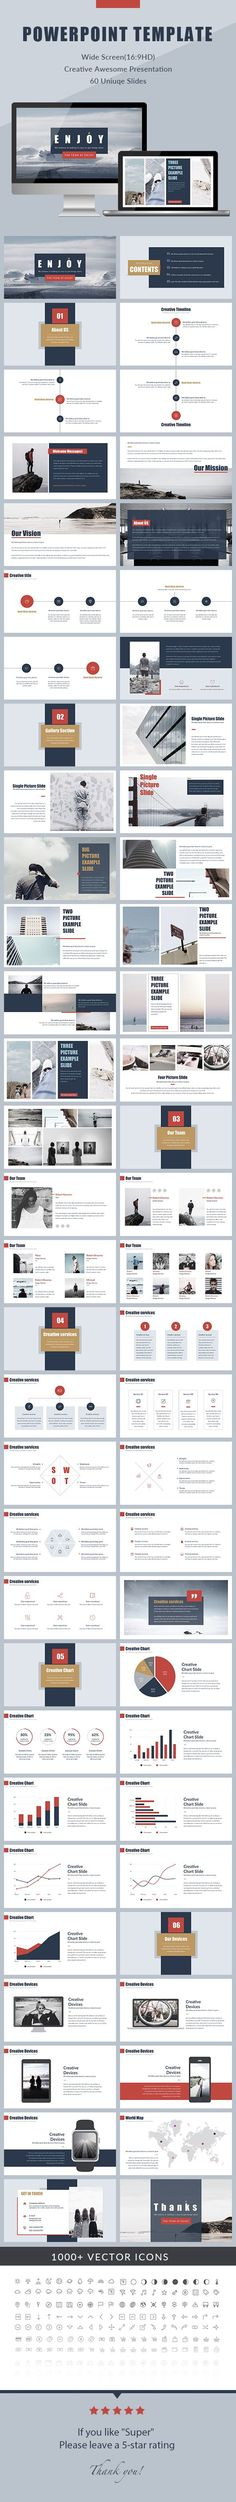 Enjoy - Minimal PowerPoint Presentation Template                                                                                                                                                                                 More